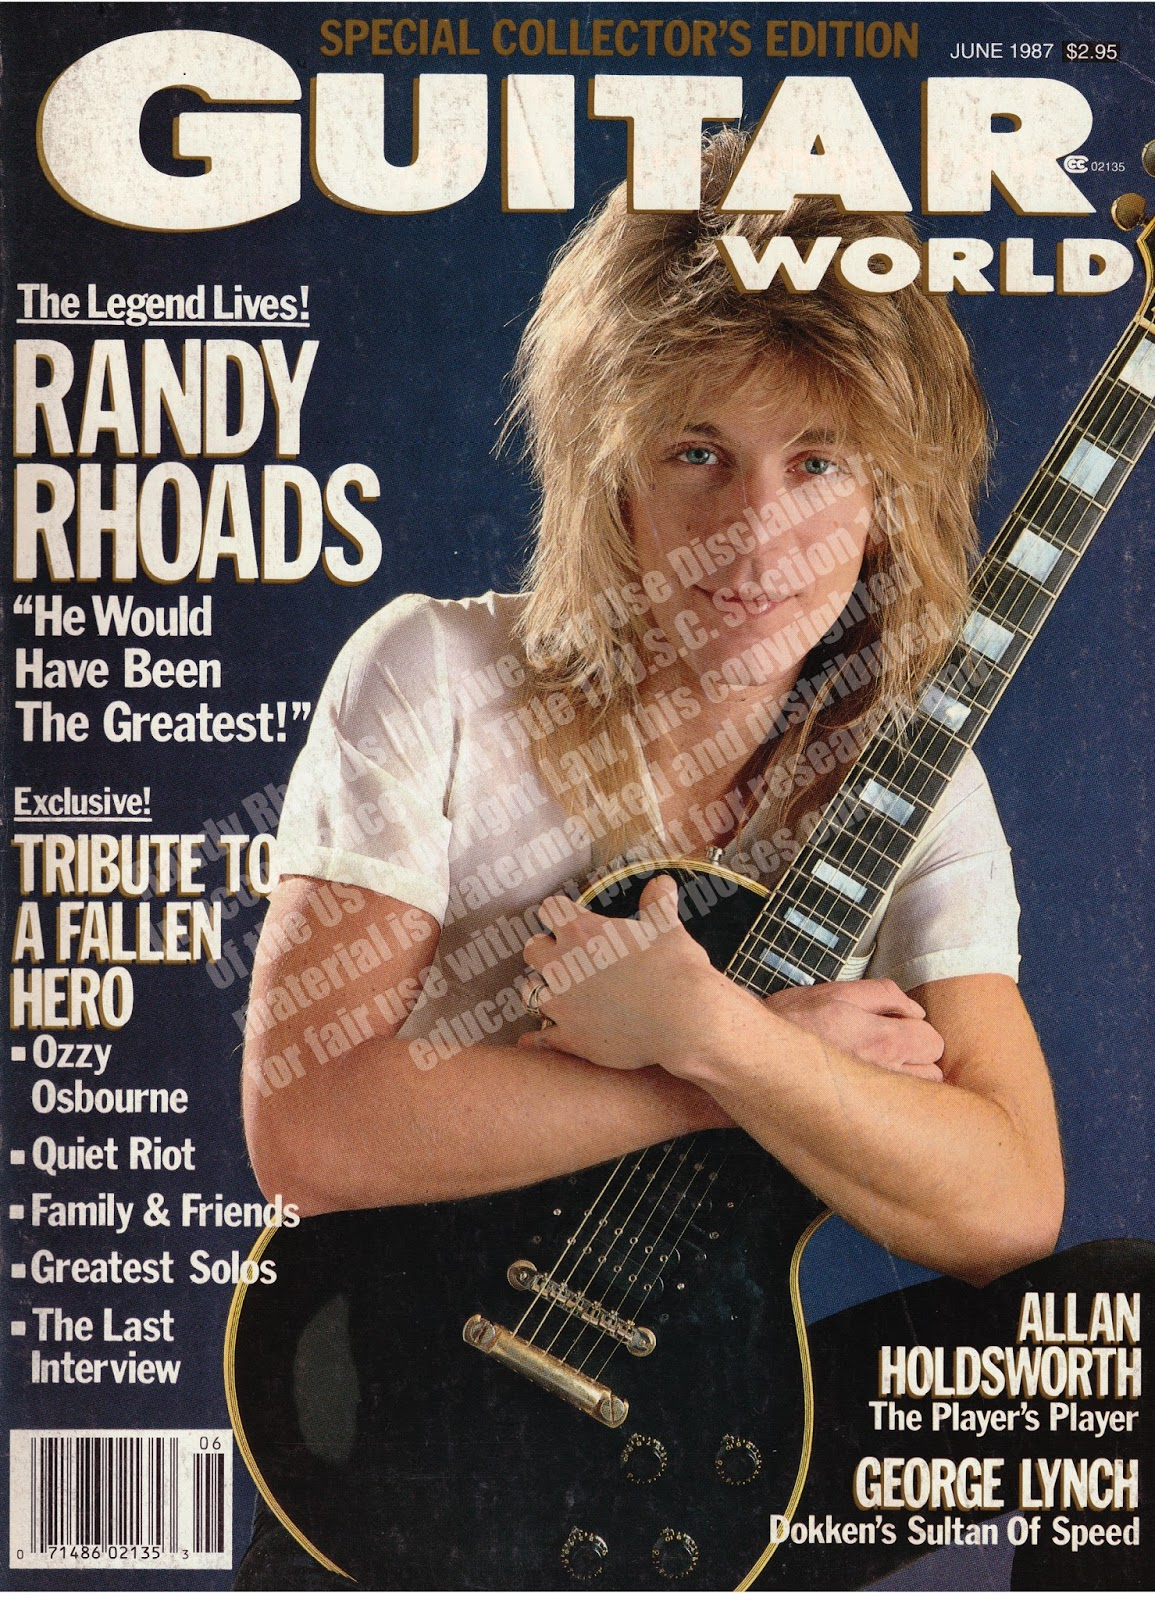 Randy Rhoads Archive Guitar World June 1987 | Randy Rhoads Archive